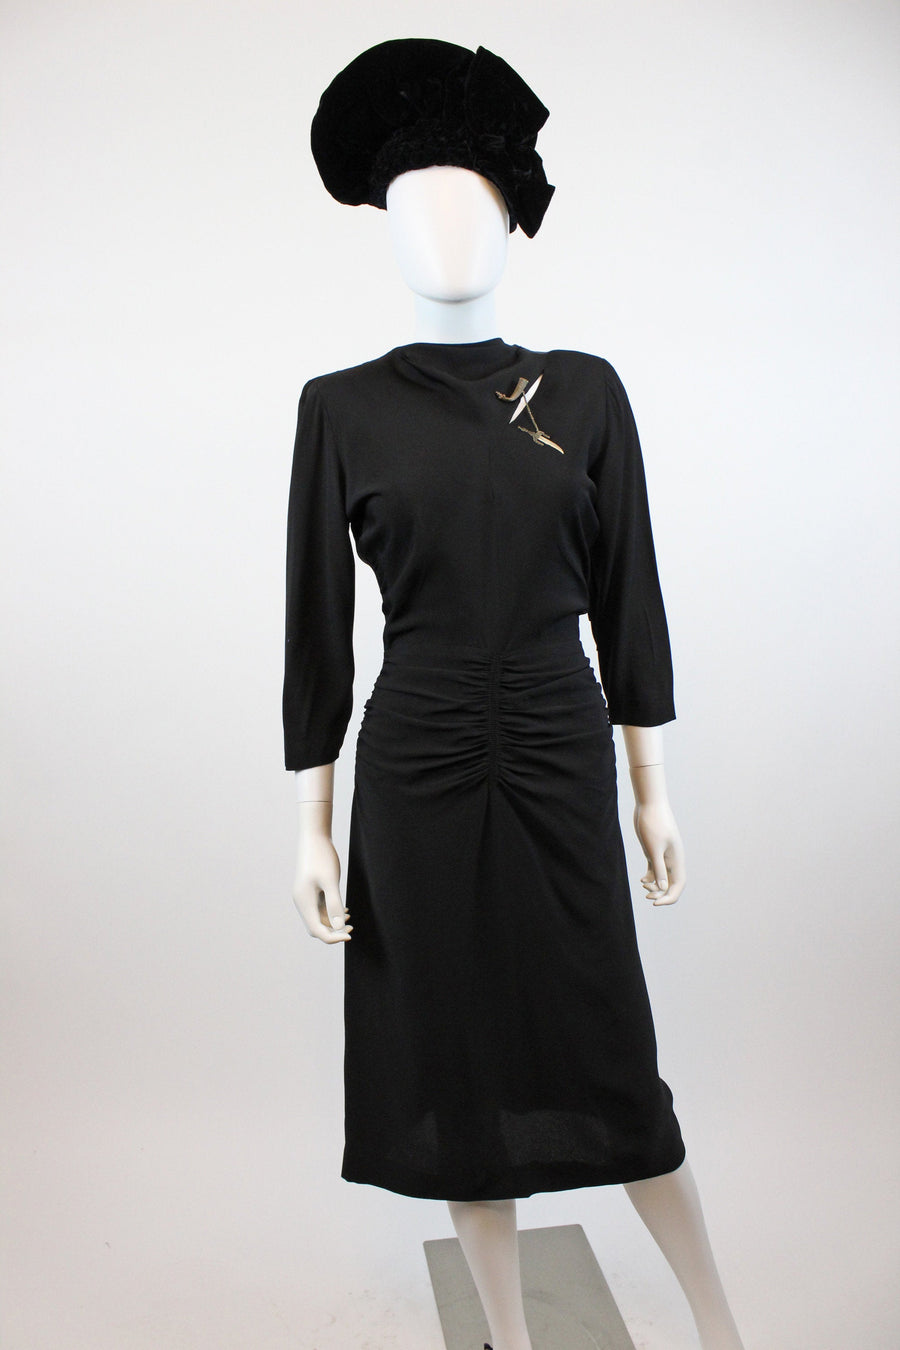 1940s slash ruched dress small | vintage rayon dress | new in